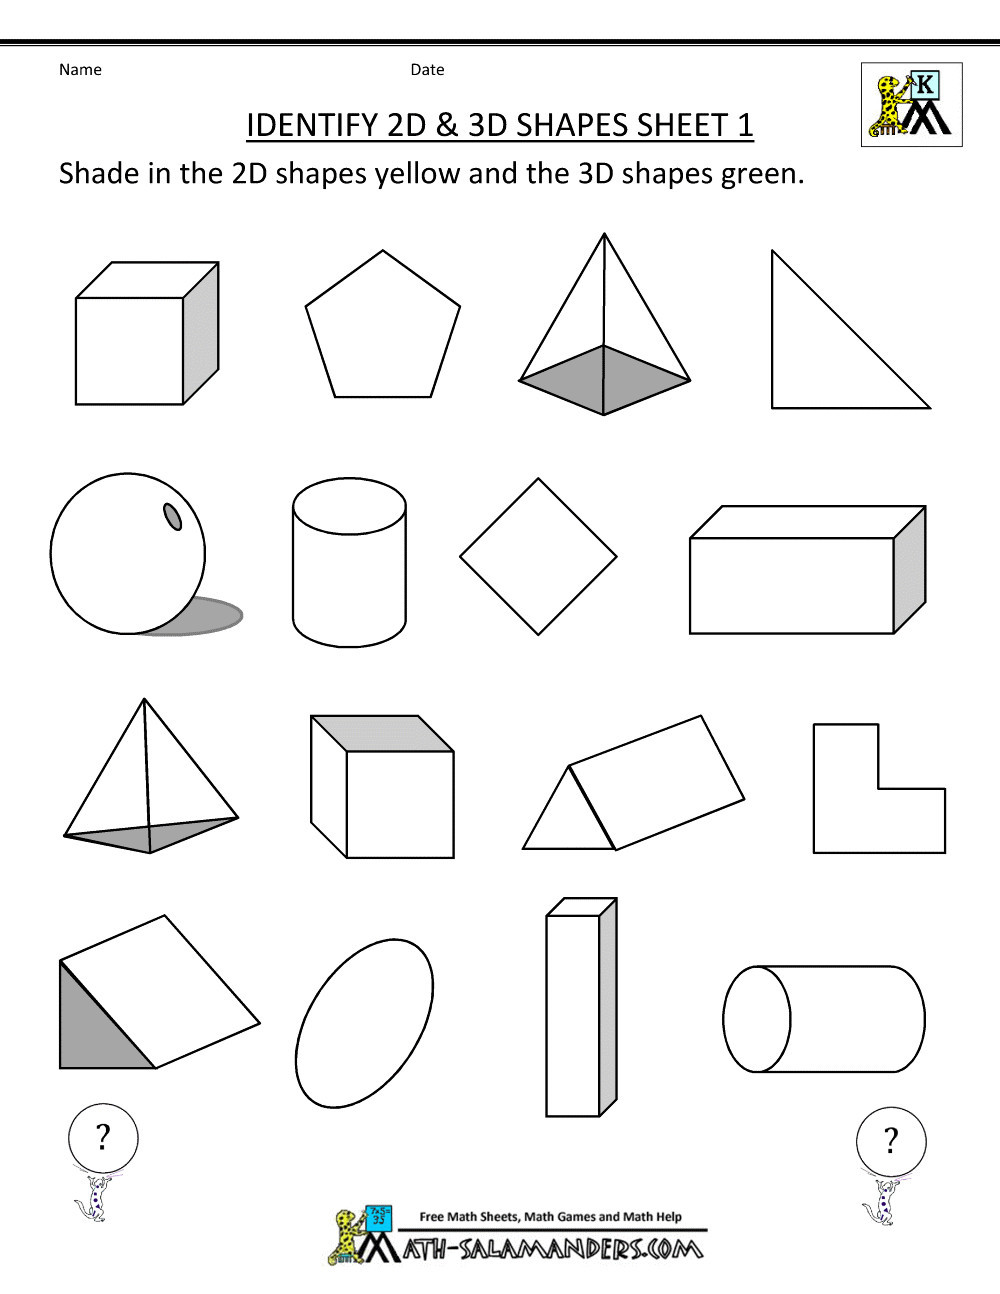 Shapes Worksheets for Grade 2 Worksheet Mathematics Worksheets for Grade Image Ideas